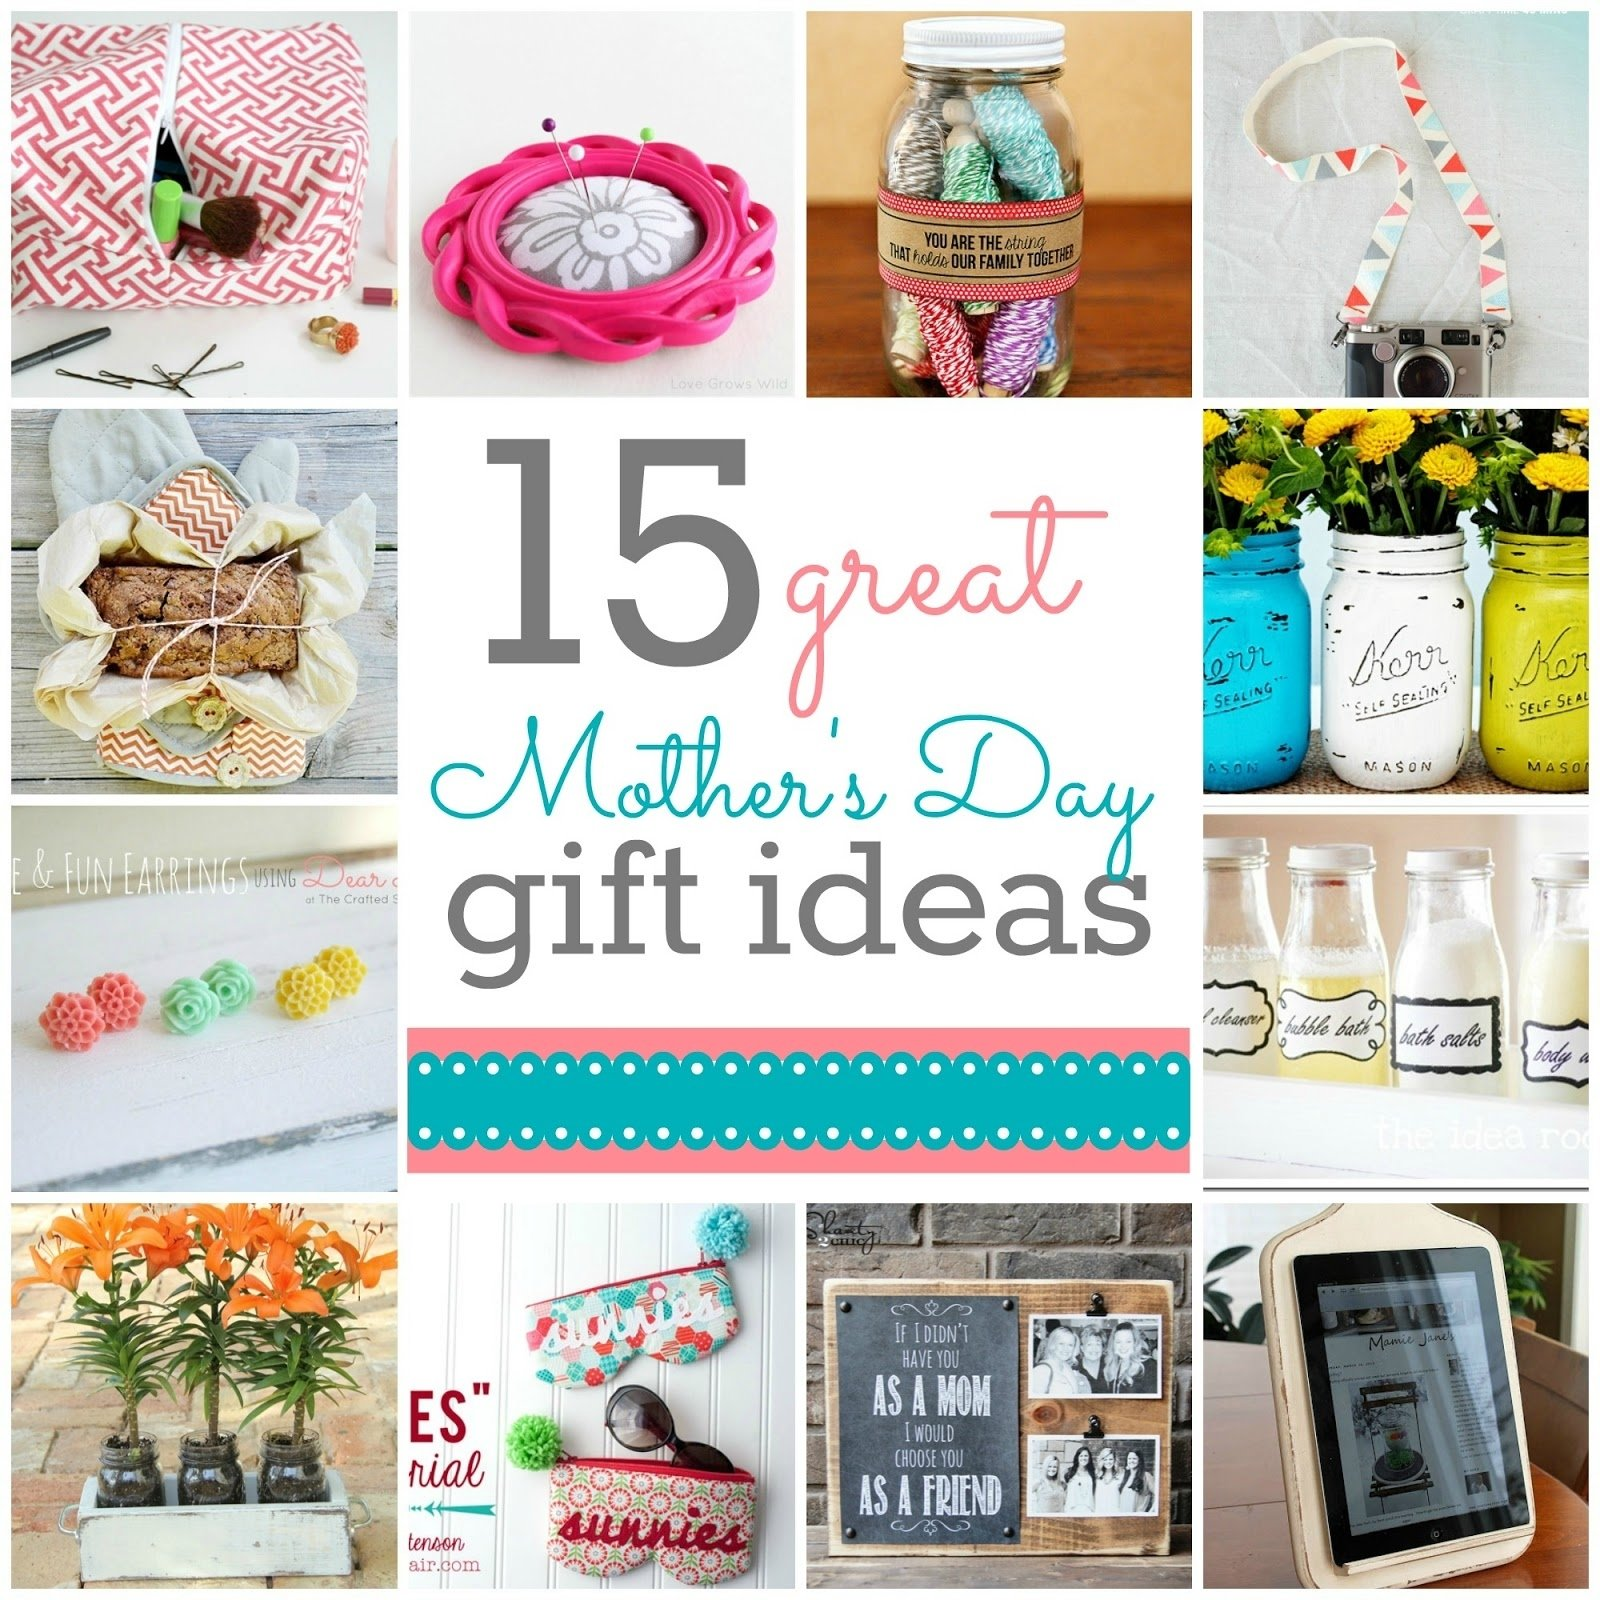 10 unique birthday gift idea for mom